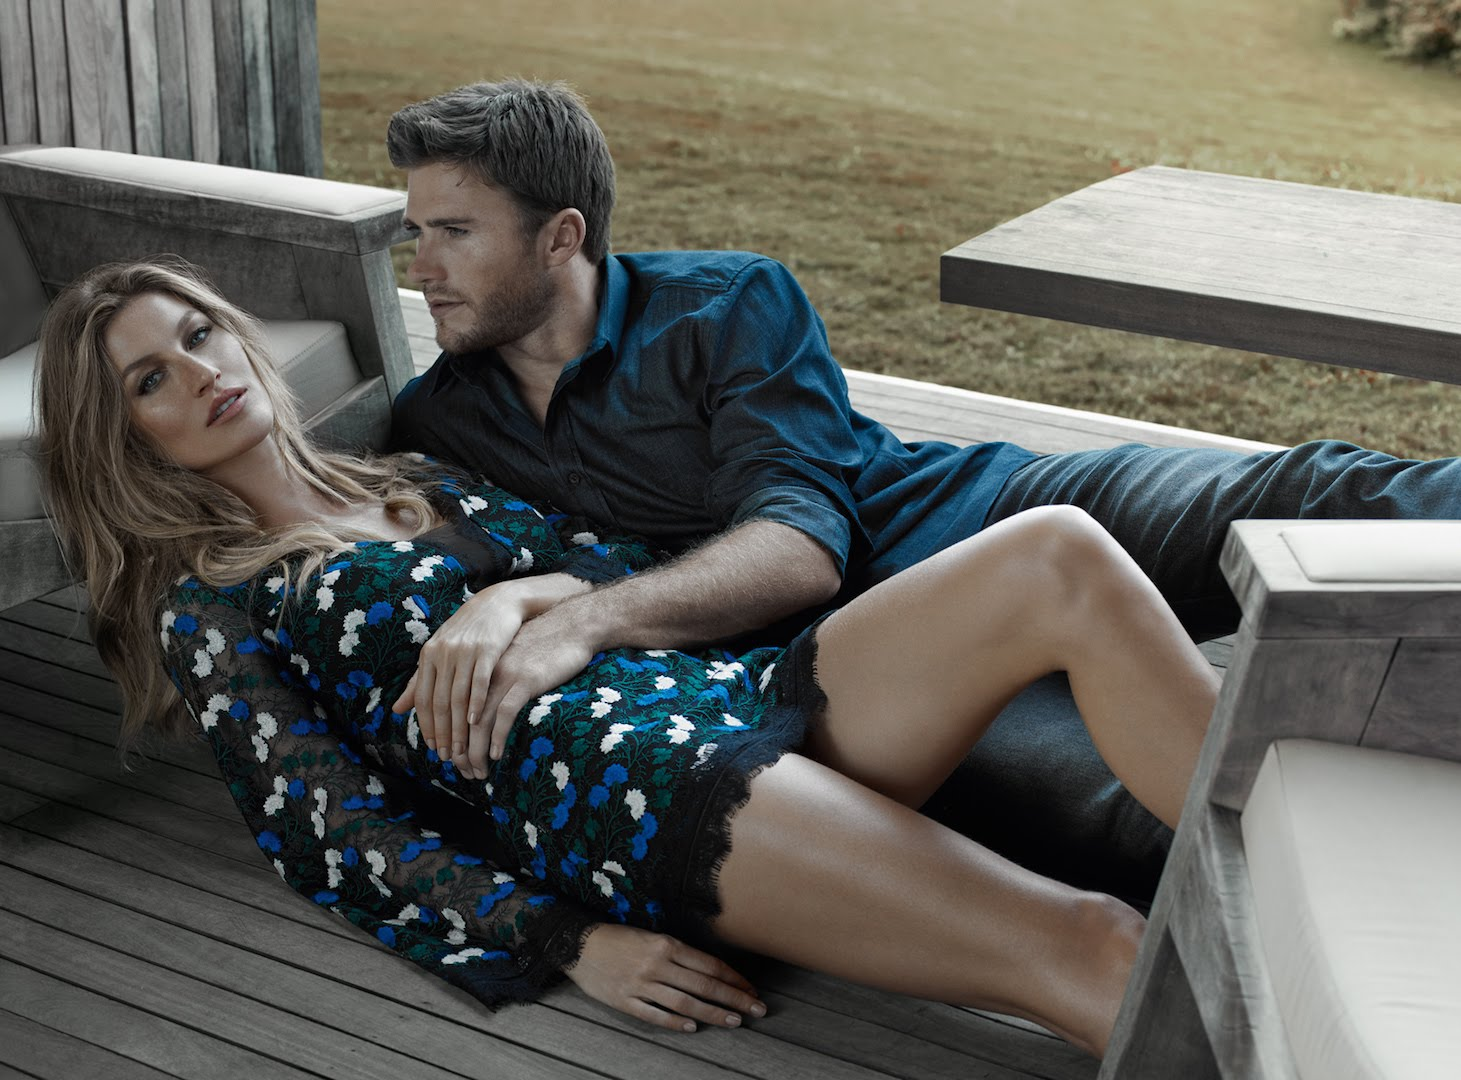 Gisele Bündchen and Scott Eastwood for Colcci